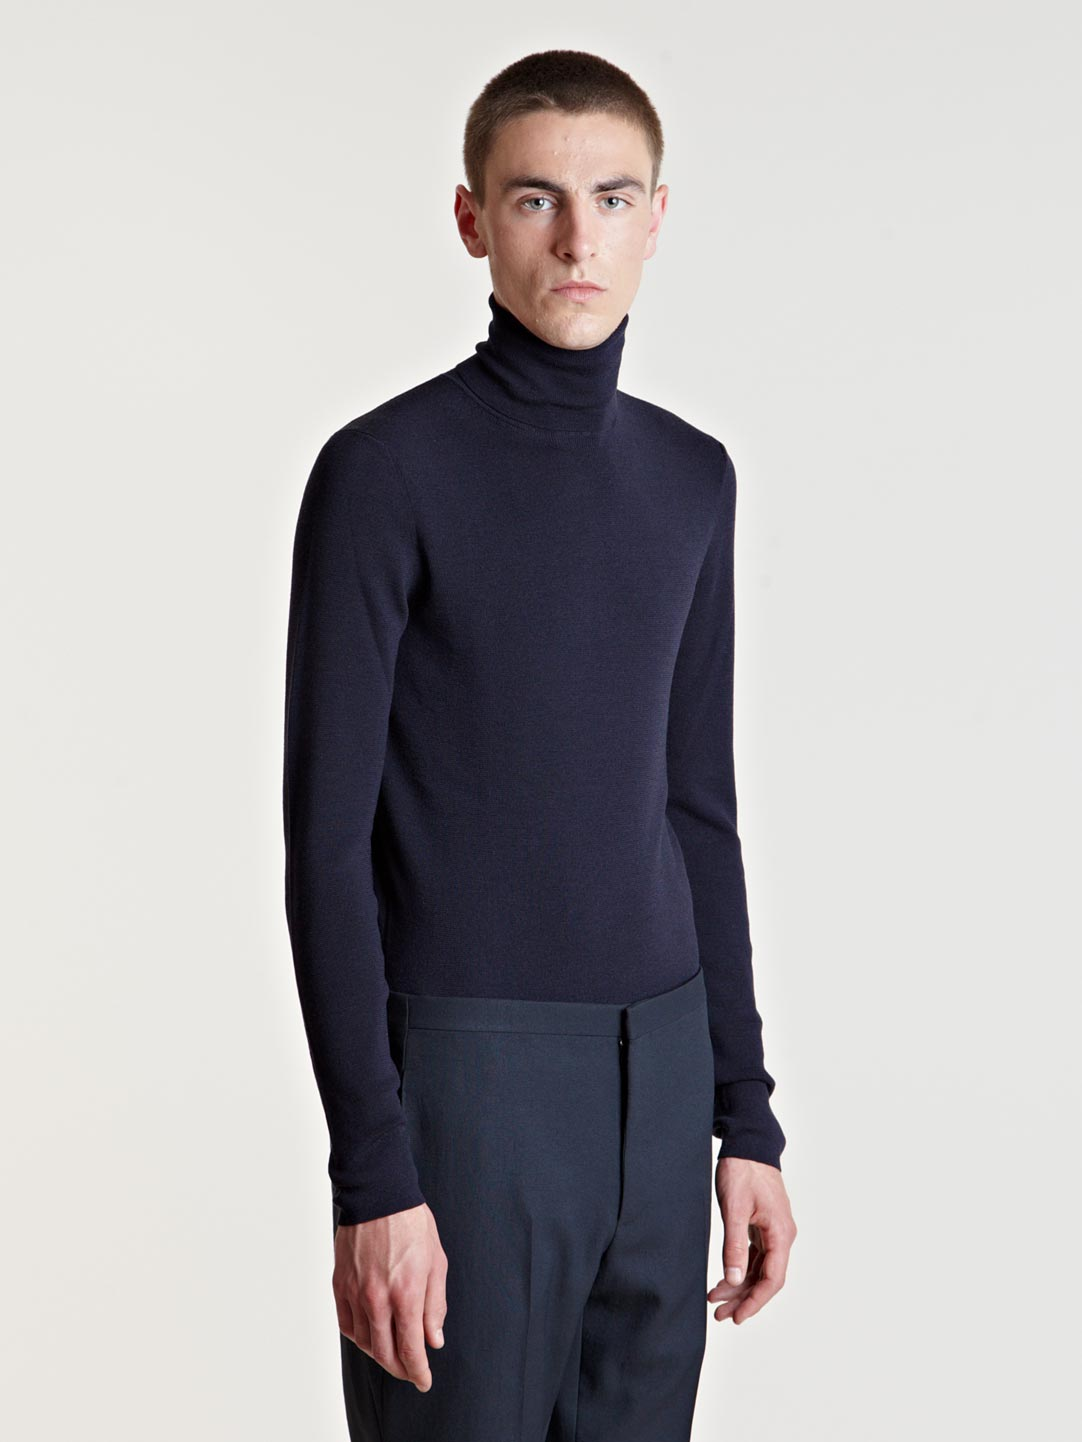 You searched for: mens turtleneck! Etsy is the home to thousands of handmade, vintage, and one-of-a-kind products and gifts related to your search. No matter what you're looking for or where you are in the world, our global marketplace of sellers can help you find unique and affordable options. Let's get started!